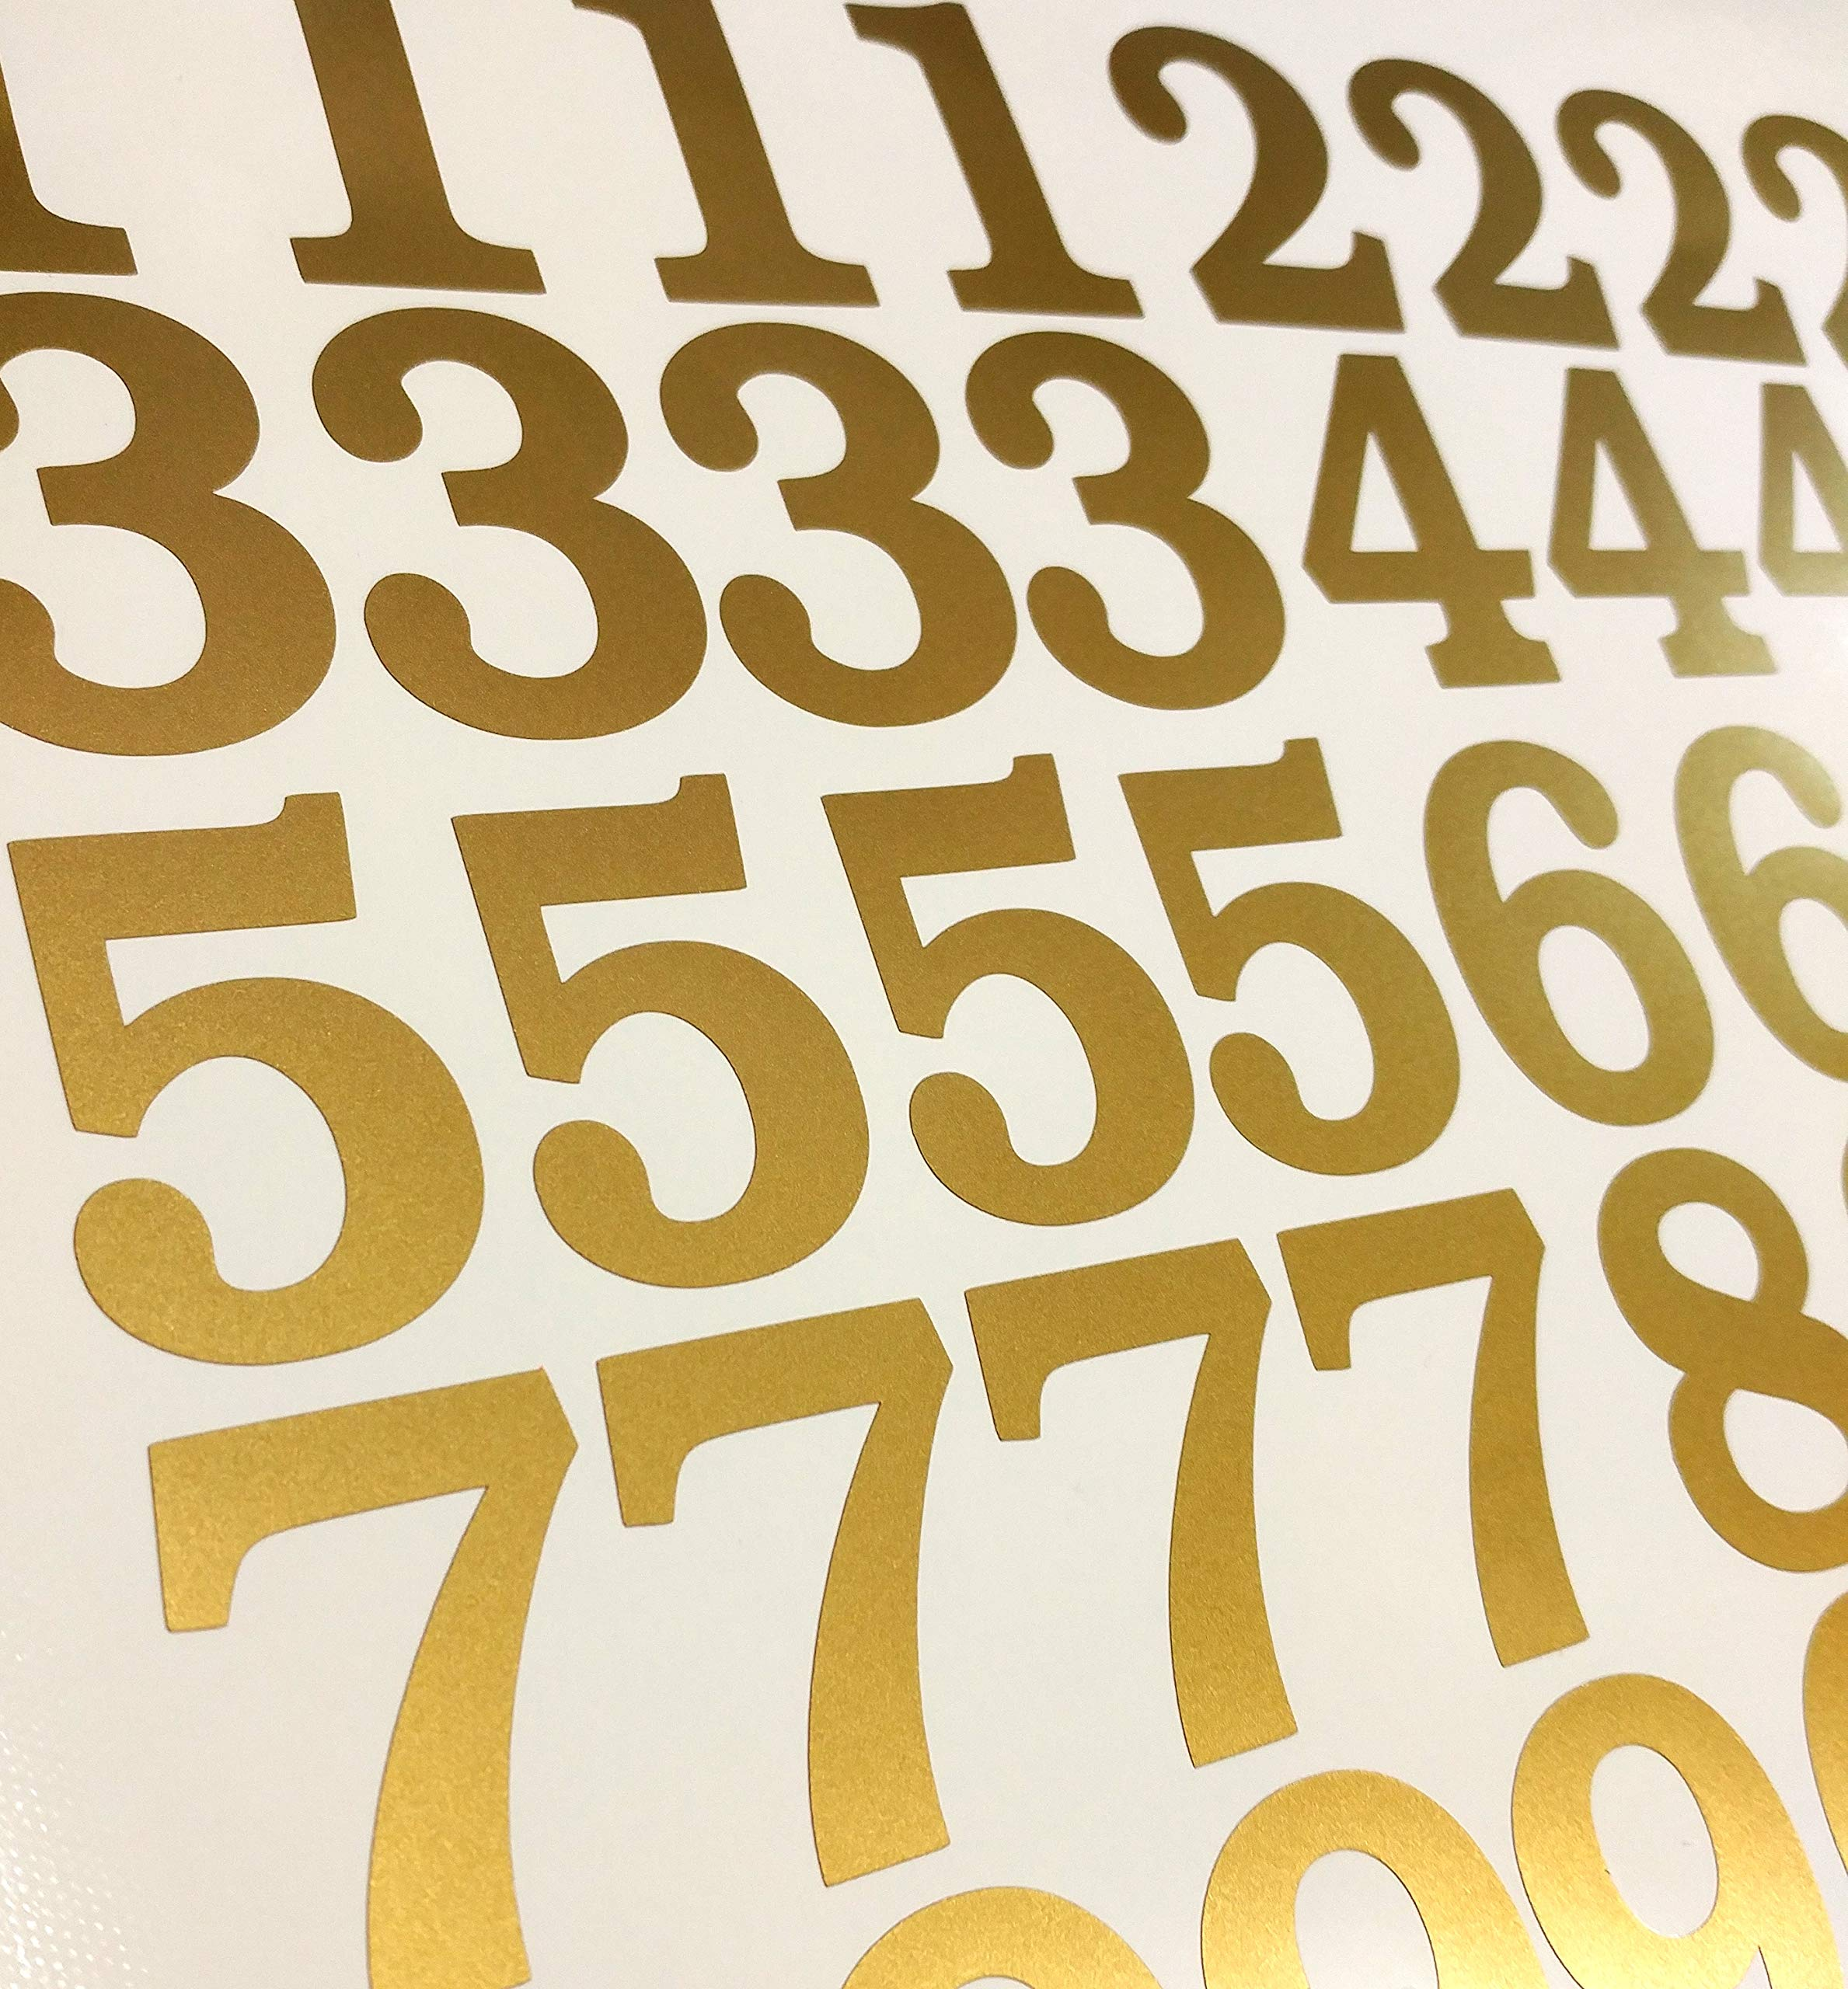 2'' Metallic Gold Color, Classic Style Mailbox Numbers,Lot of 40 (4 of each number form 0 to 9) 2 inch tall, Vinyl Mailbox Numbers,Doors,Tool Box,Locker,Car,Truck,Address Decal Stickers (Bookman Bold)